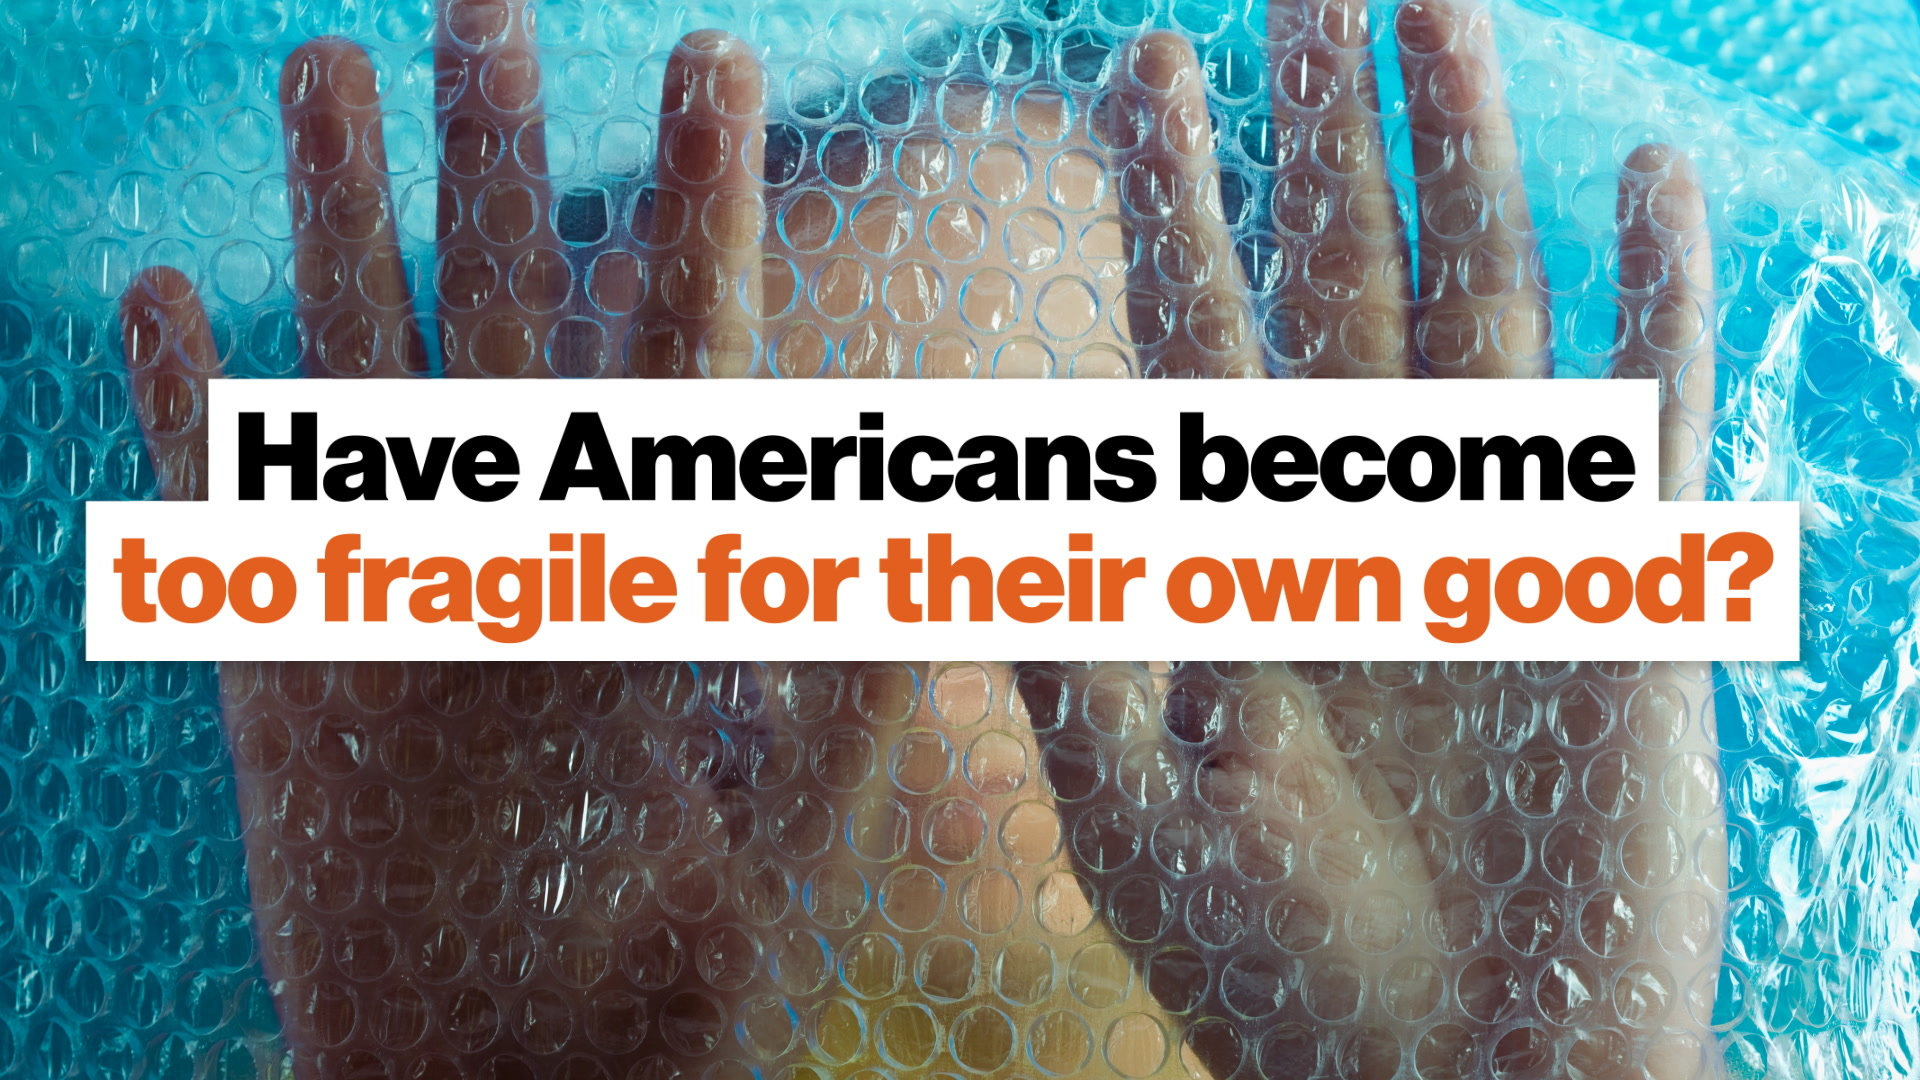 Have Americans become too fragile for their own good?